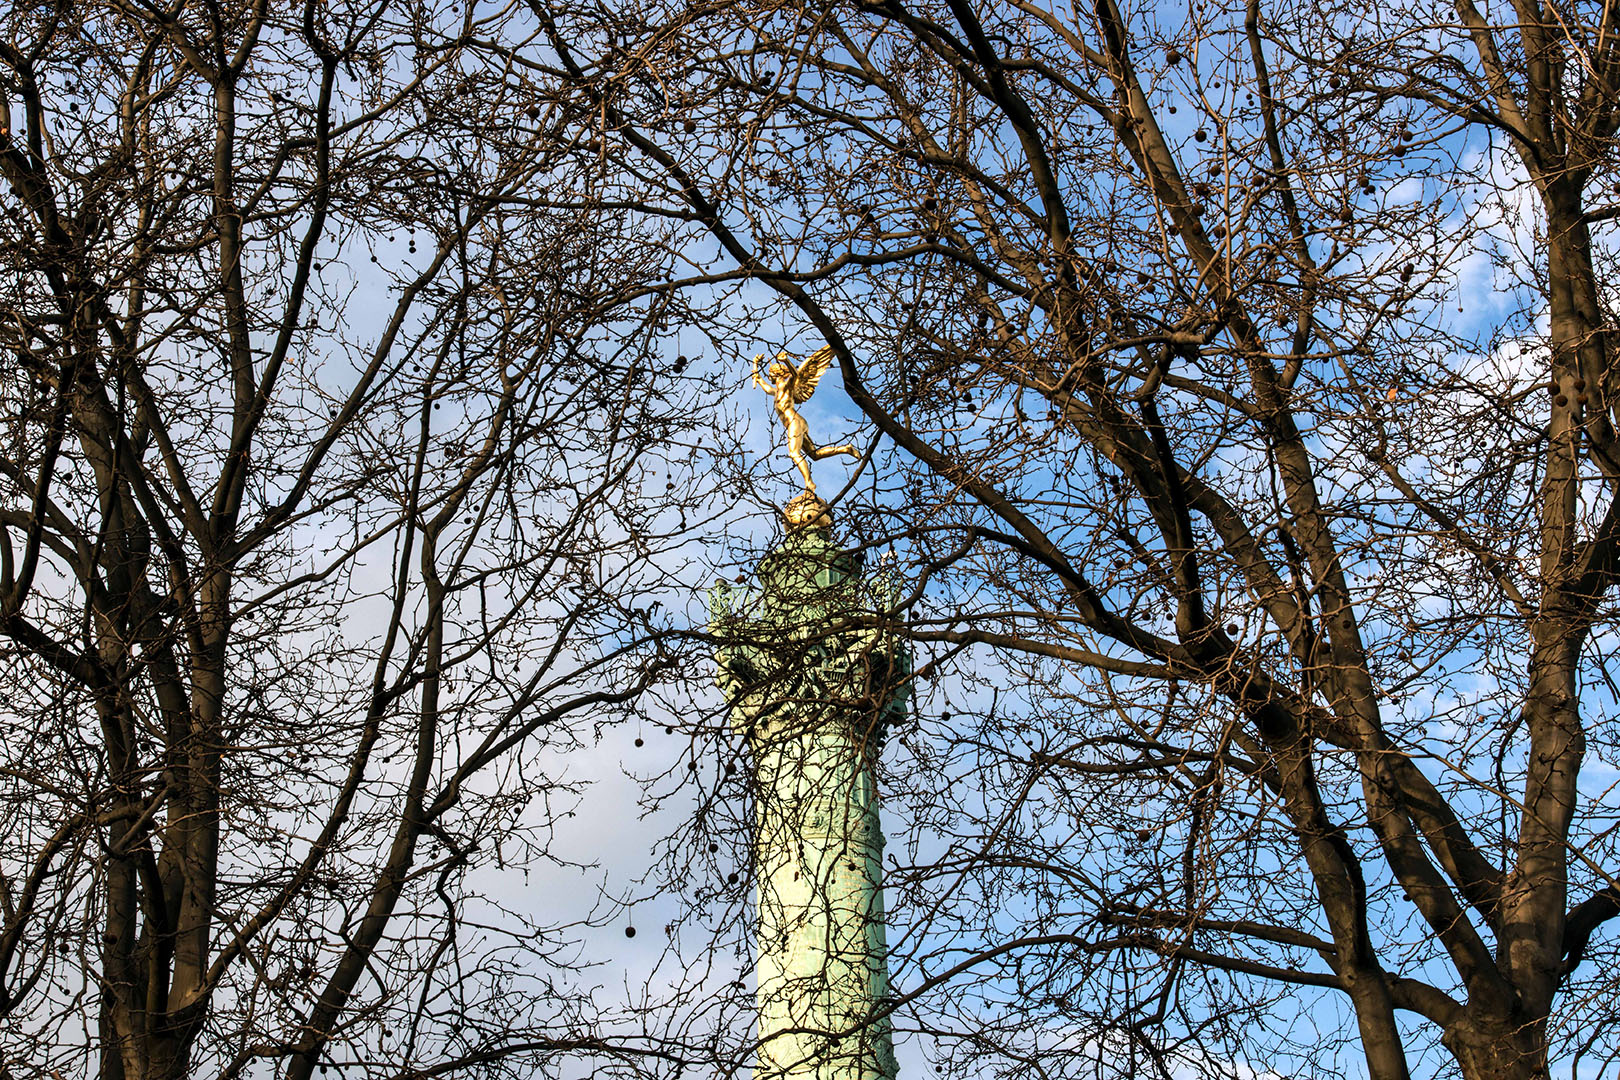 Naked atop the Bastille column, the Genius, spirit of Liberty, seems to walk amid the trees